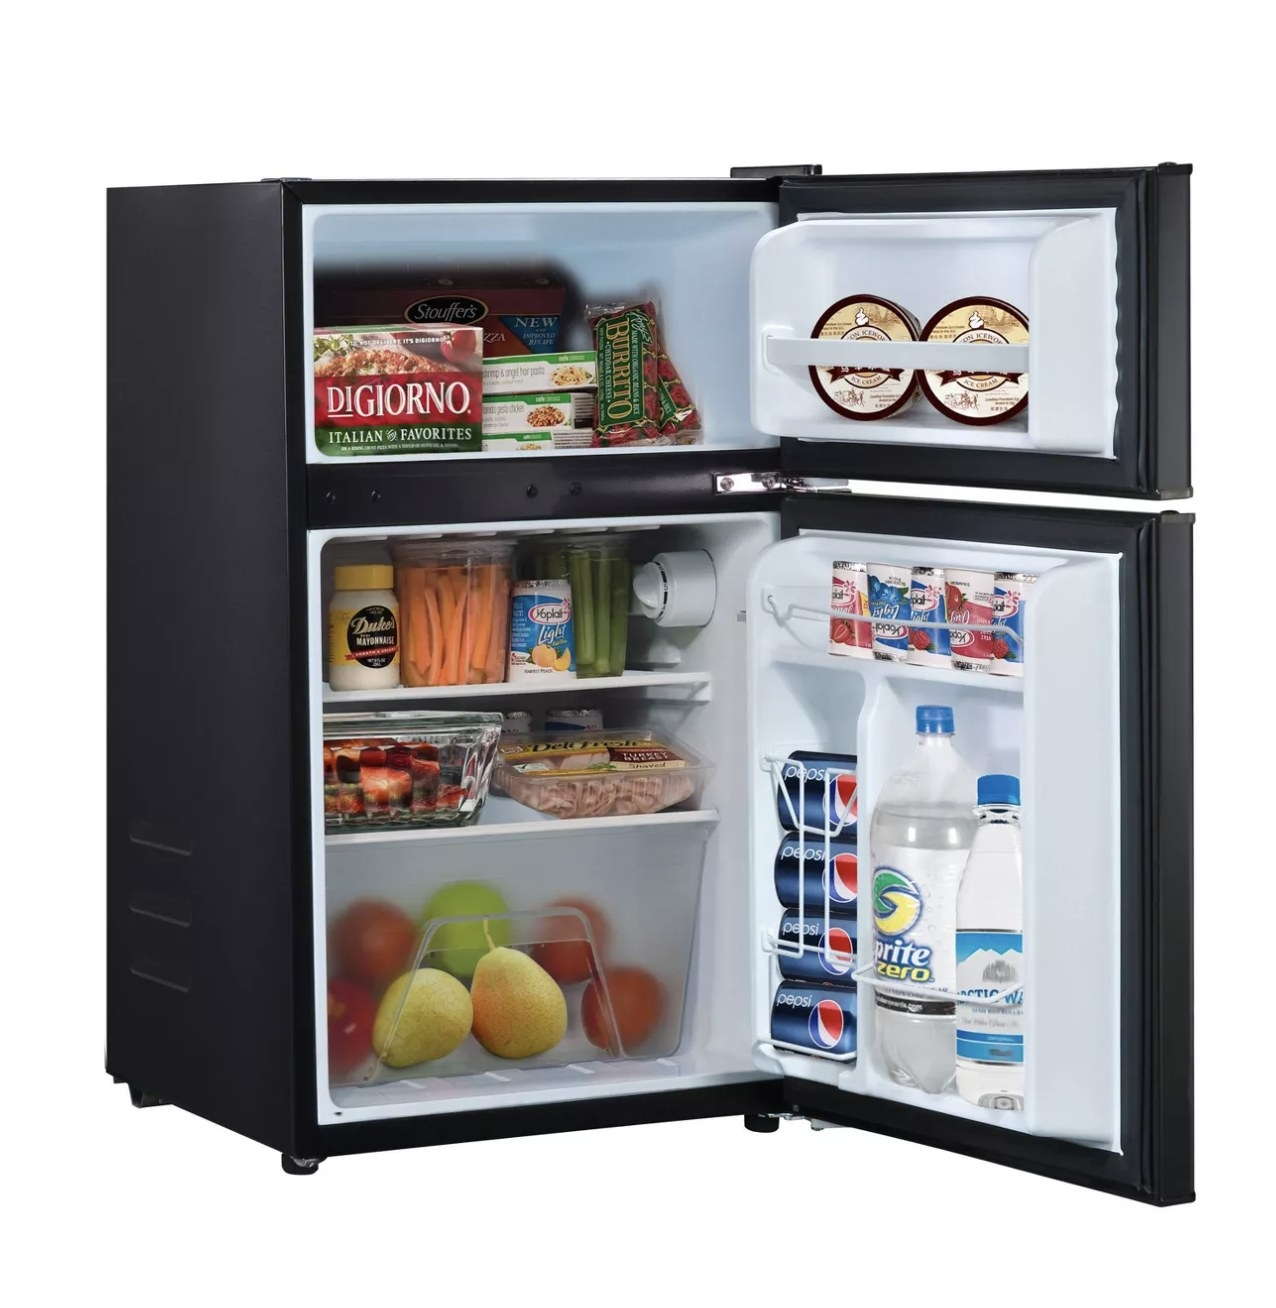 A black mini fridge with two shelves and a drawer in the inside and shelves on the door for drinks